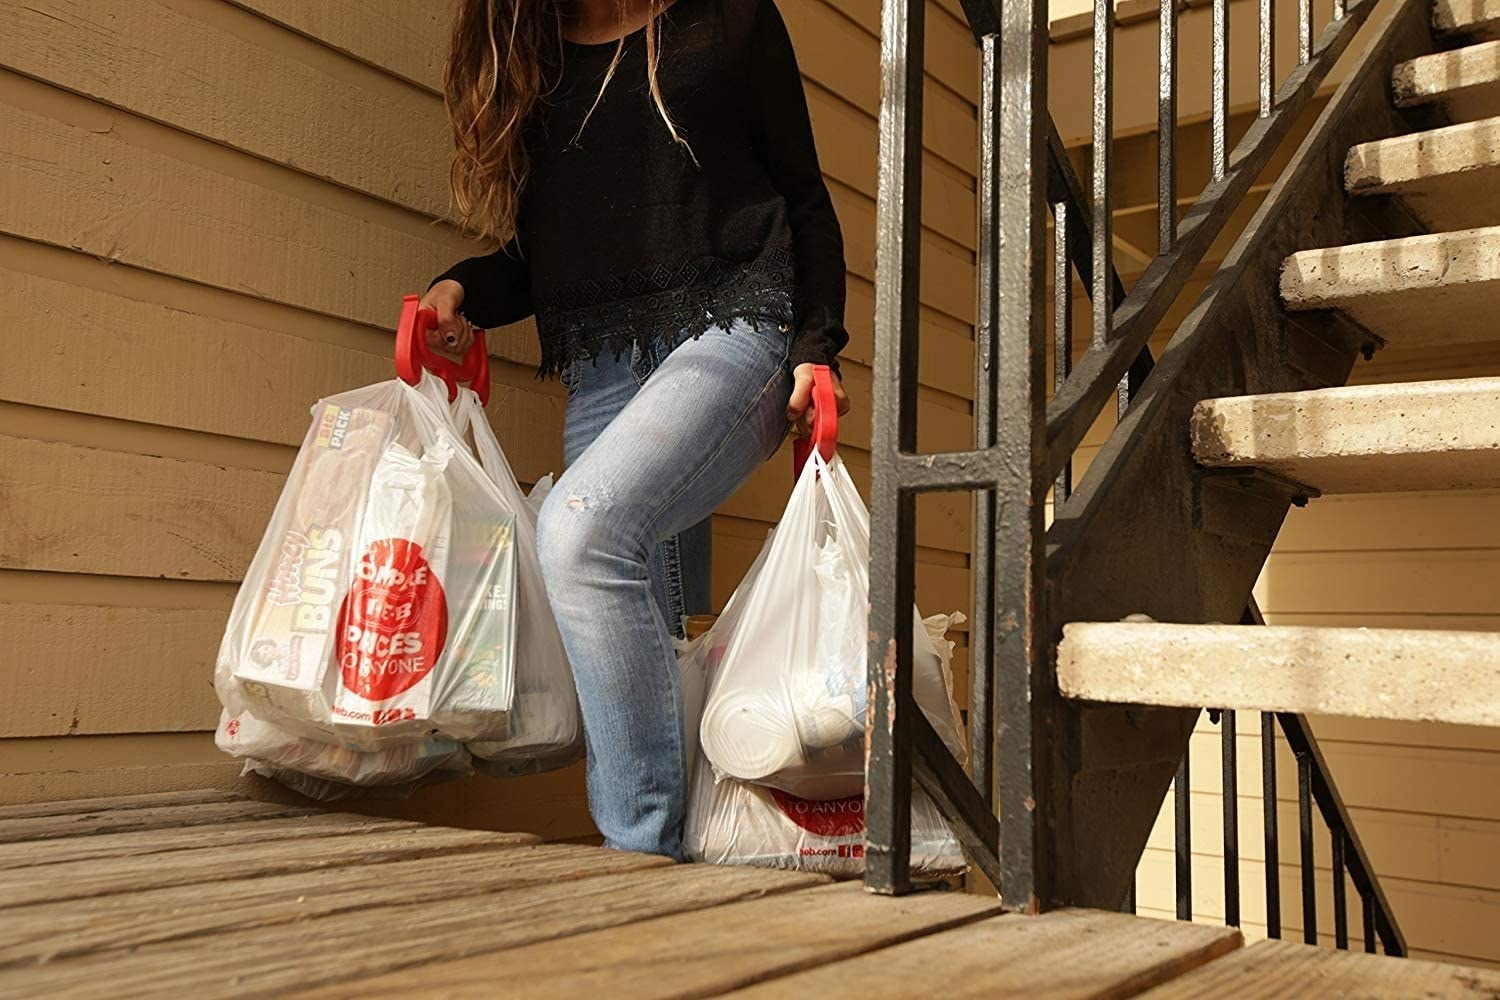 A person holding a thick circular handle in each hand that have multiple grocery bags hanging from them